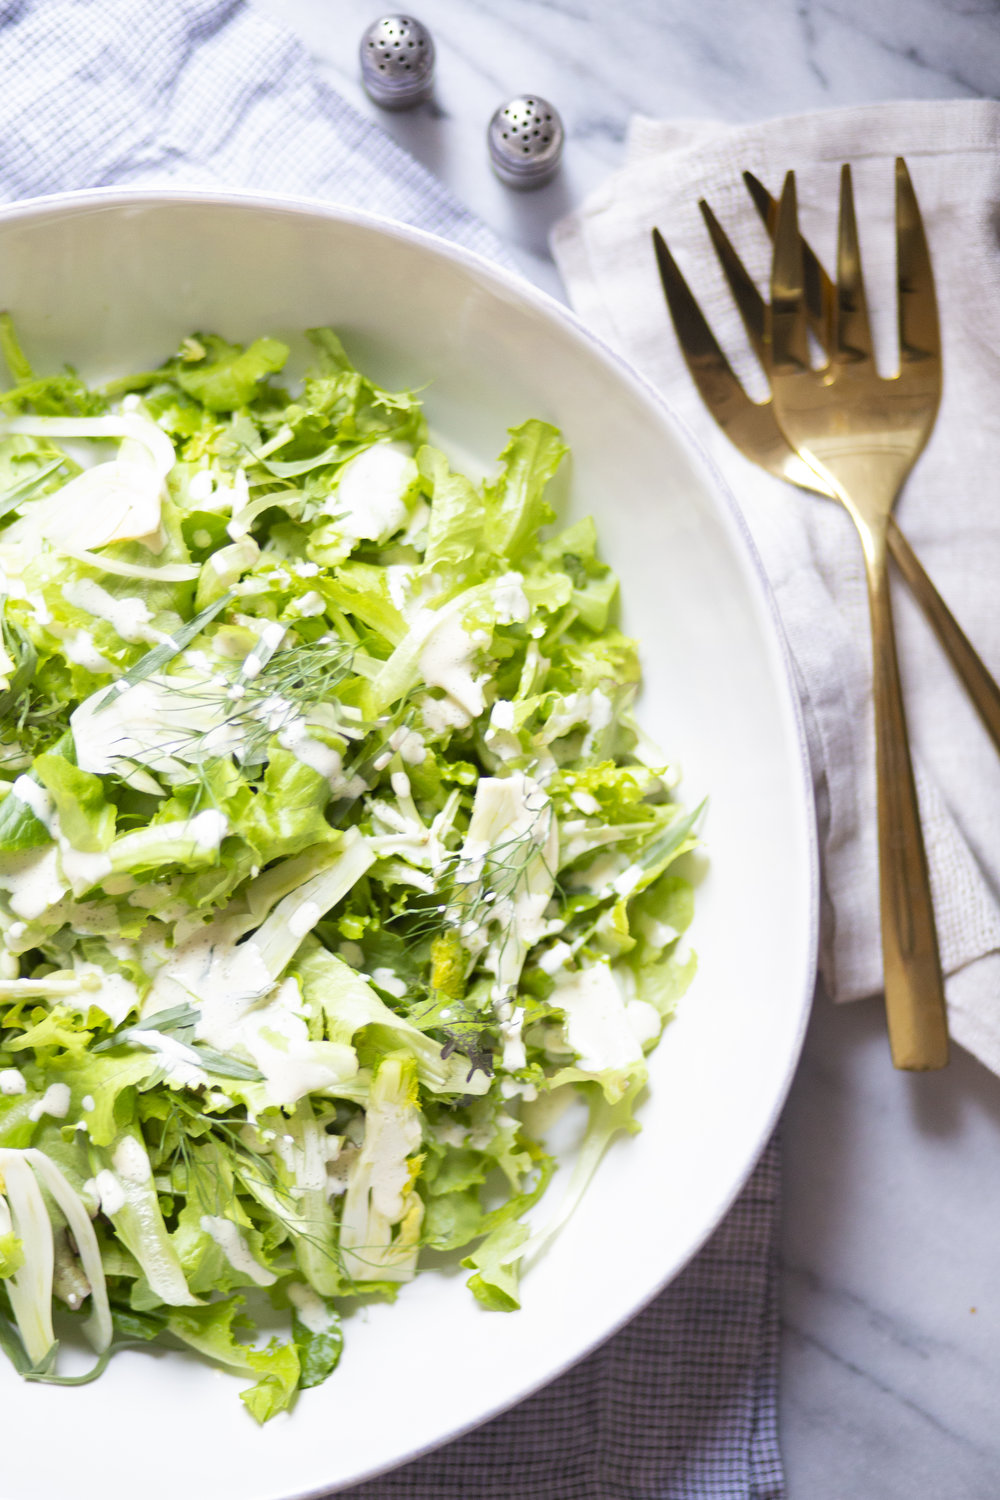 Spring Mix with Almond Milk Dressing.jpg